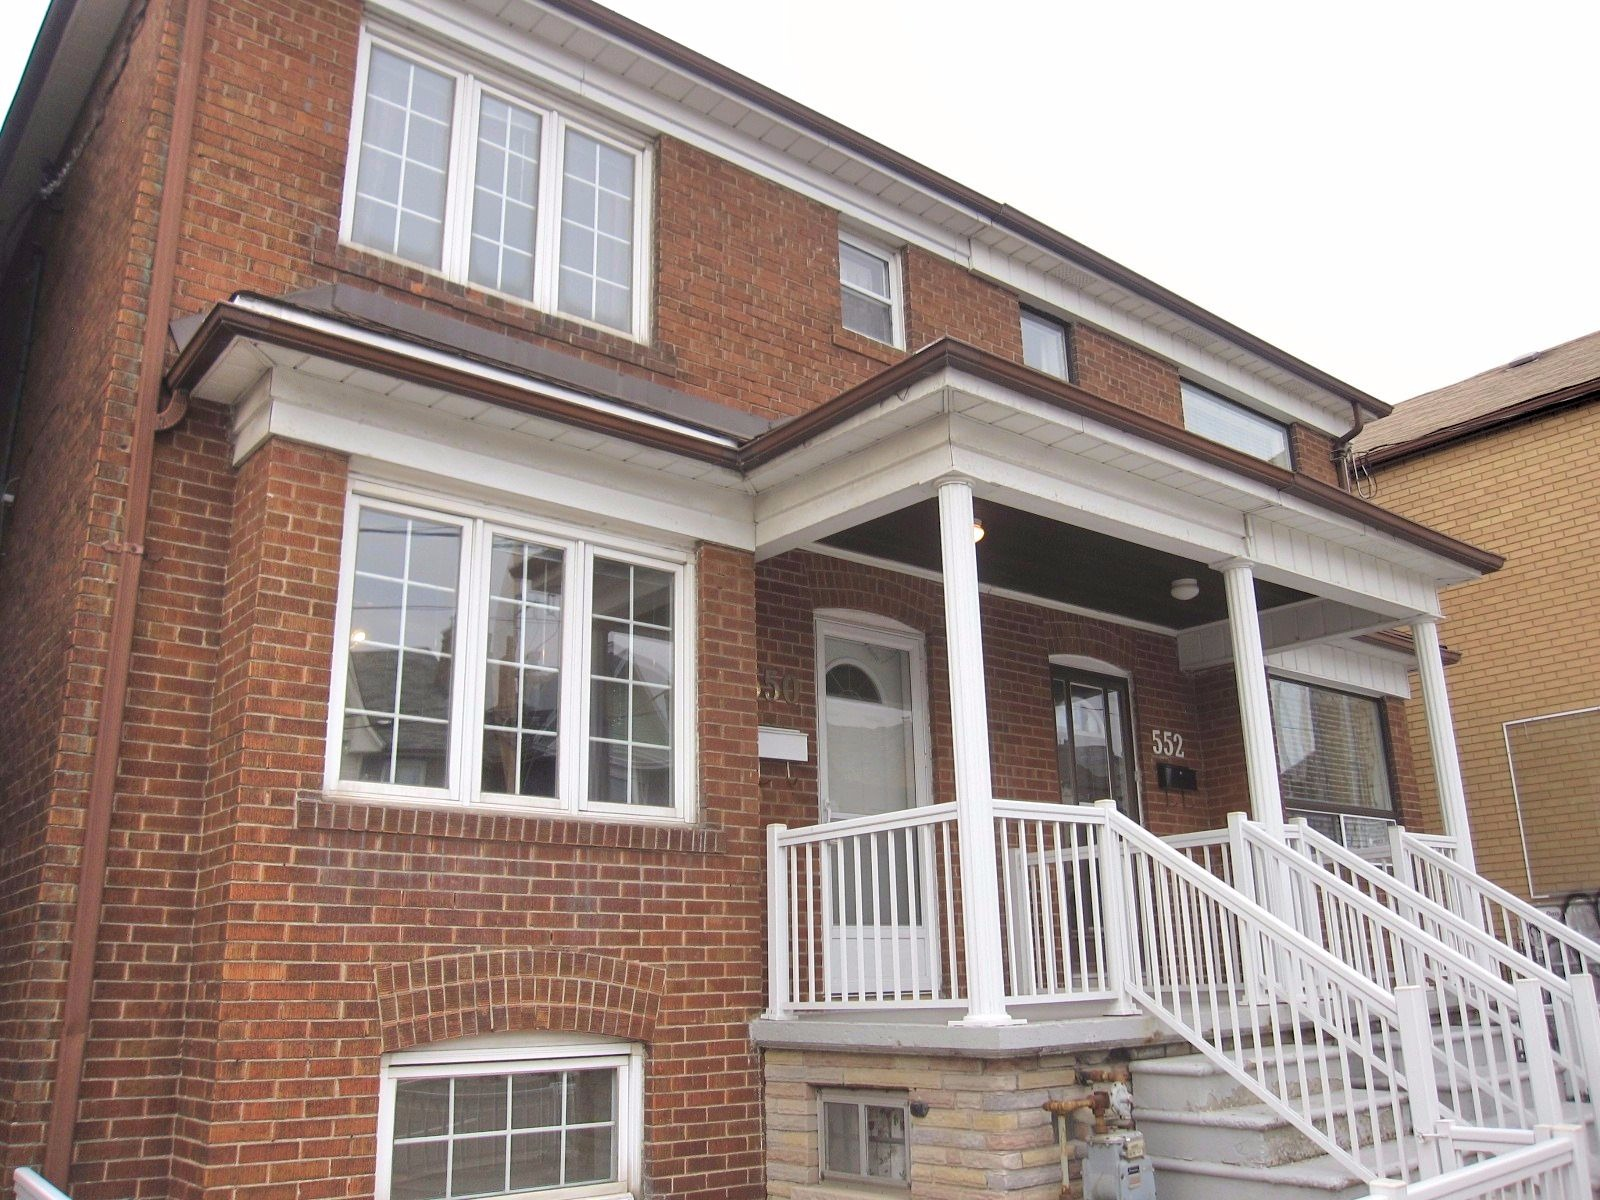 550 Dufferin Classic Beaconsfield Village 3 Bedroom Home with additional In-Law Suite! [5 bdrm potential]